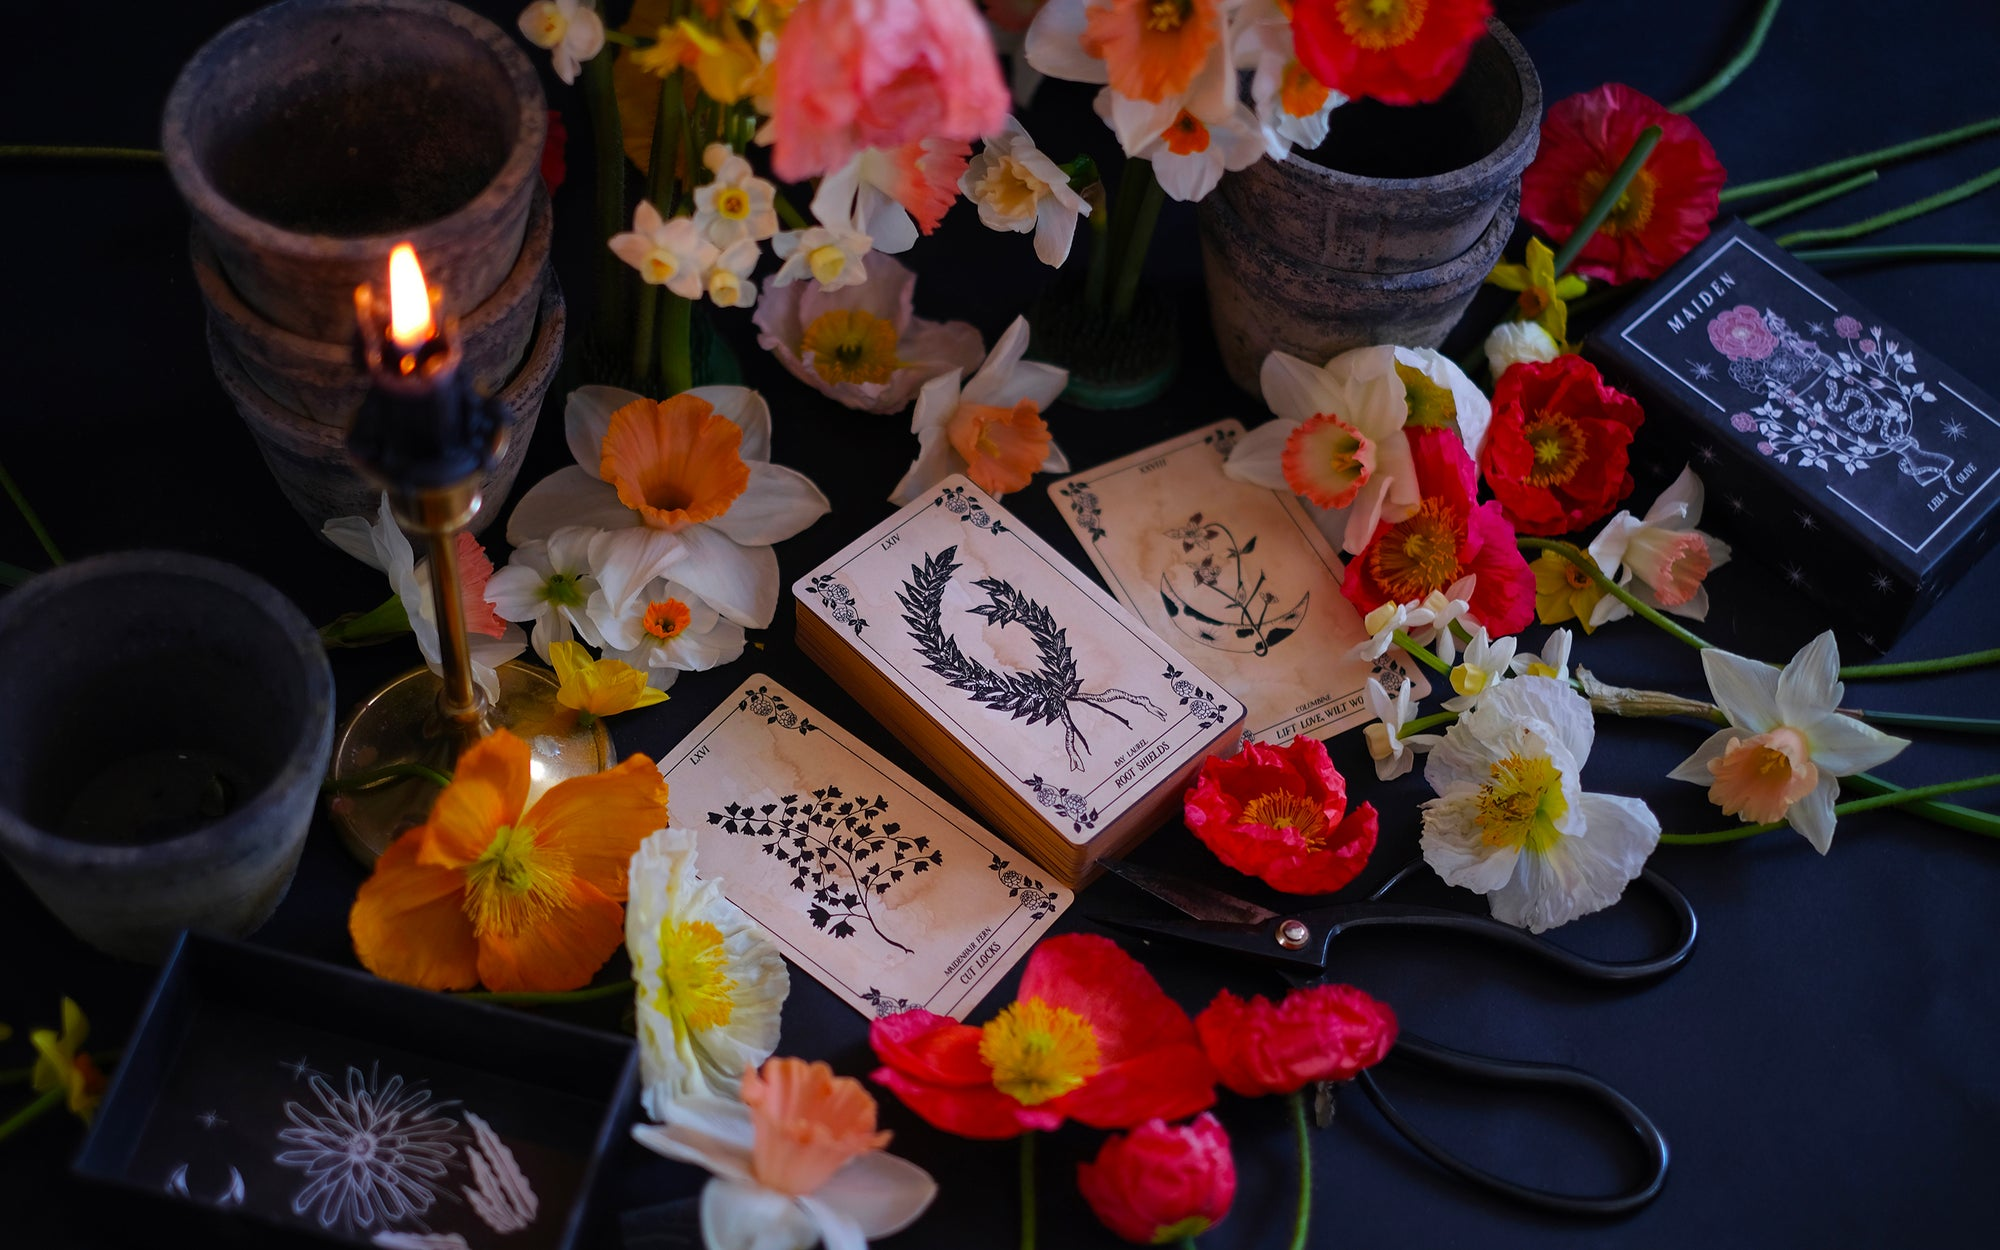 Botanical Tarot and Botanical Oracle card decks, illustrated and painted by hand. Each of these botanical and flora inspired, intuitive tarot decks delves into the garden and the natural world while remaining rooted in mythology and tradition.